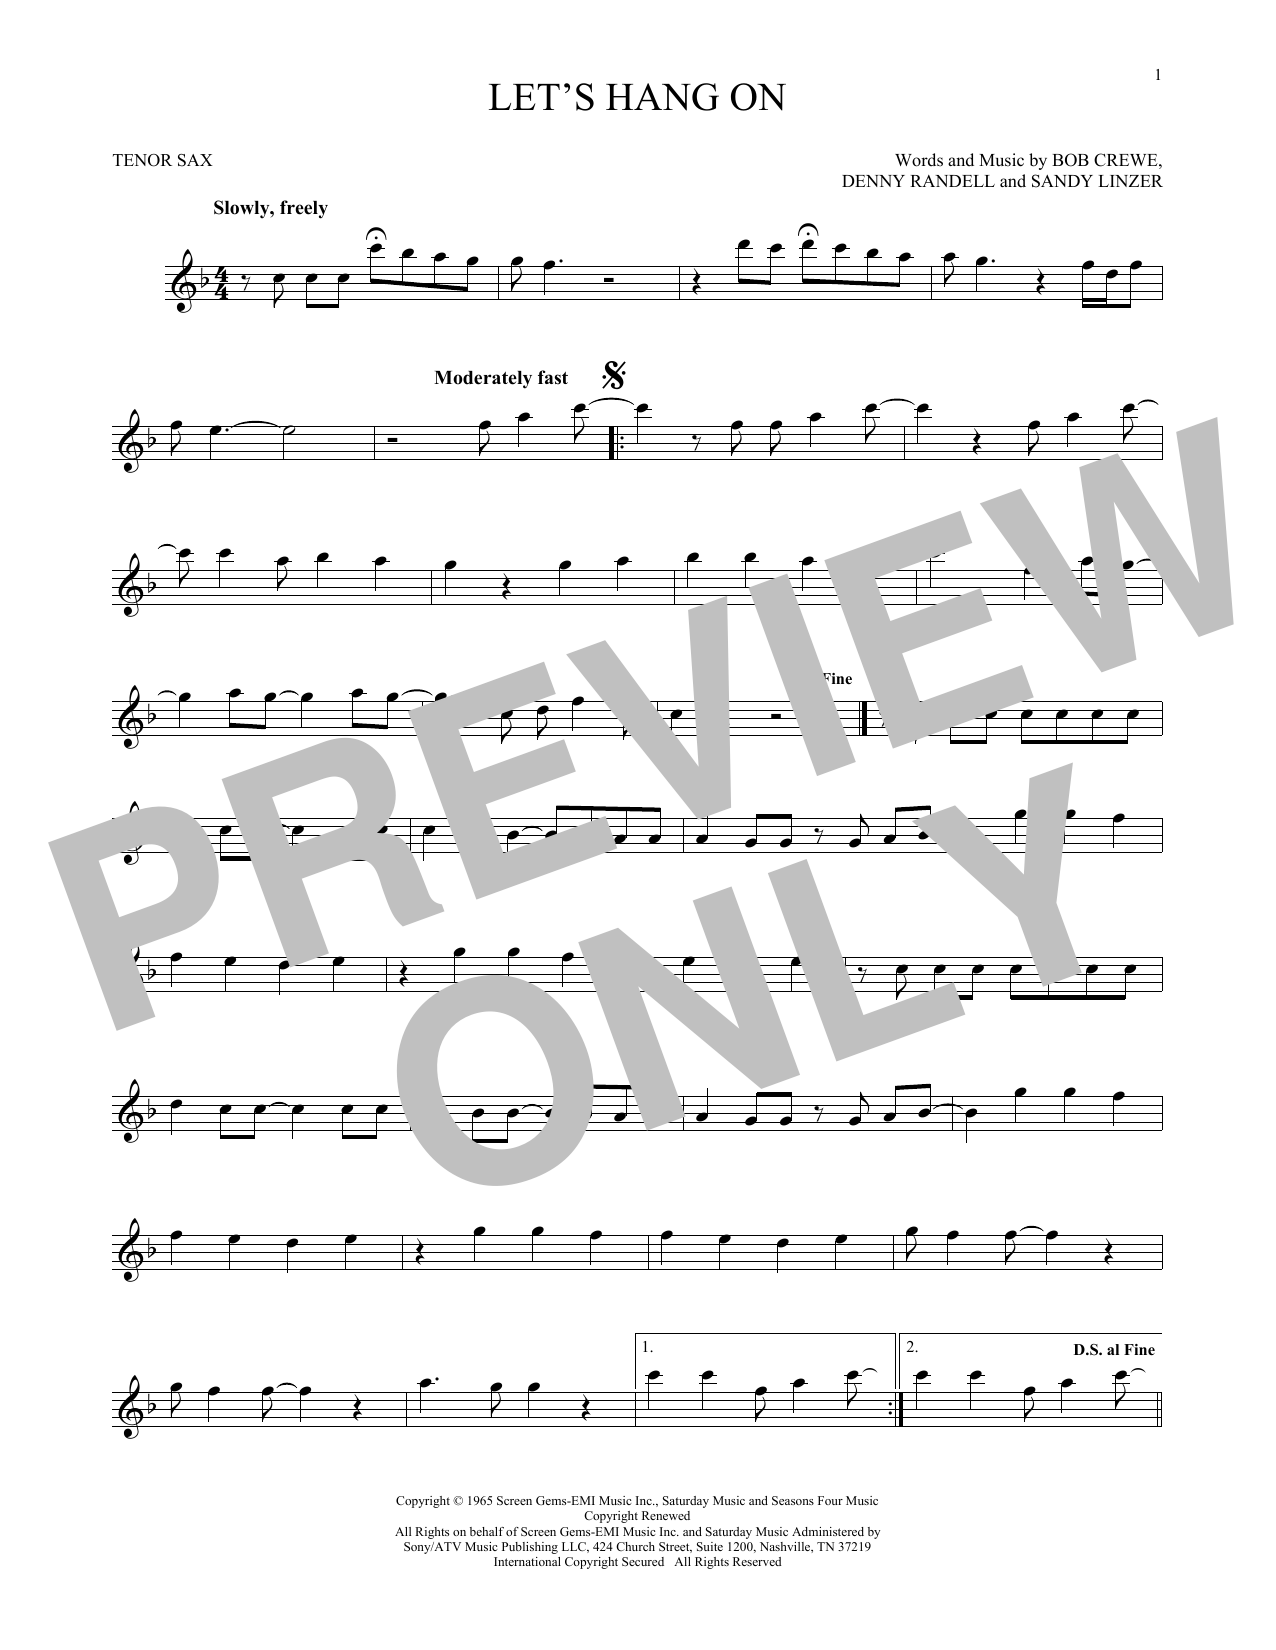 The 4 Seasons Let's Hang On sheet music notes and chords. Download Printable PDF.